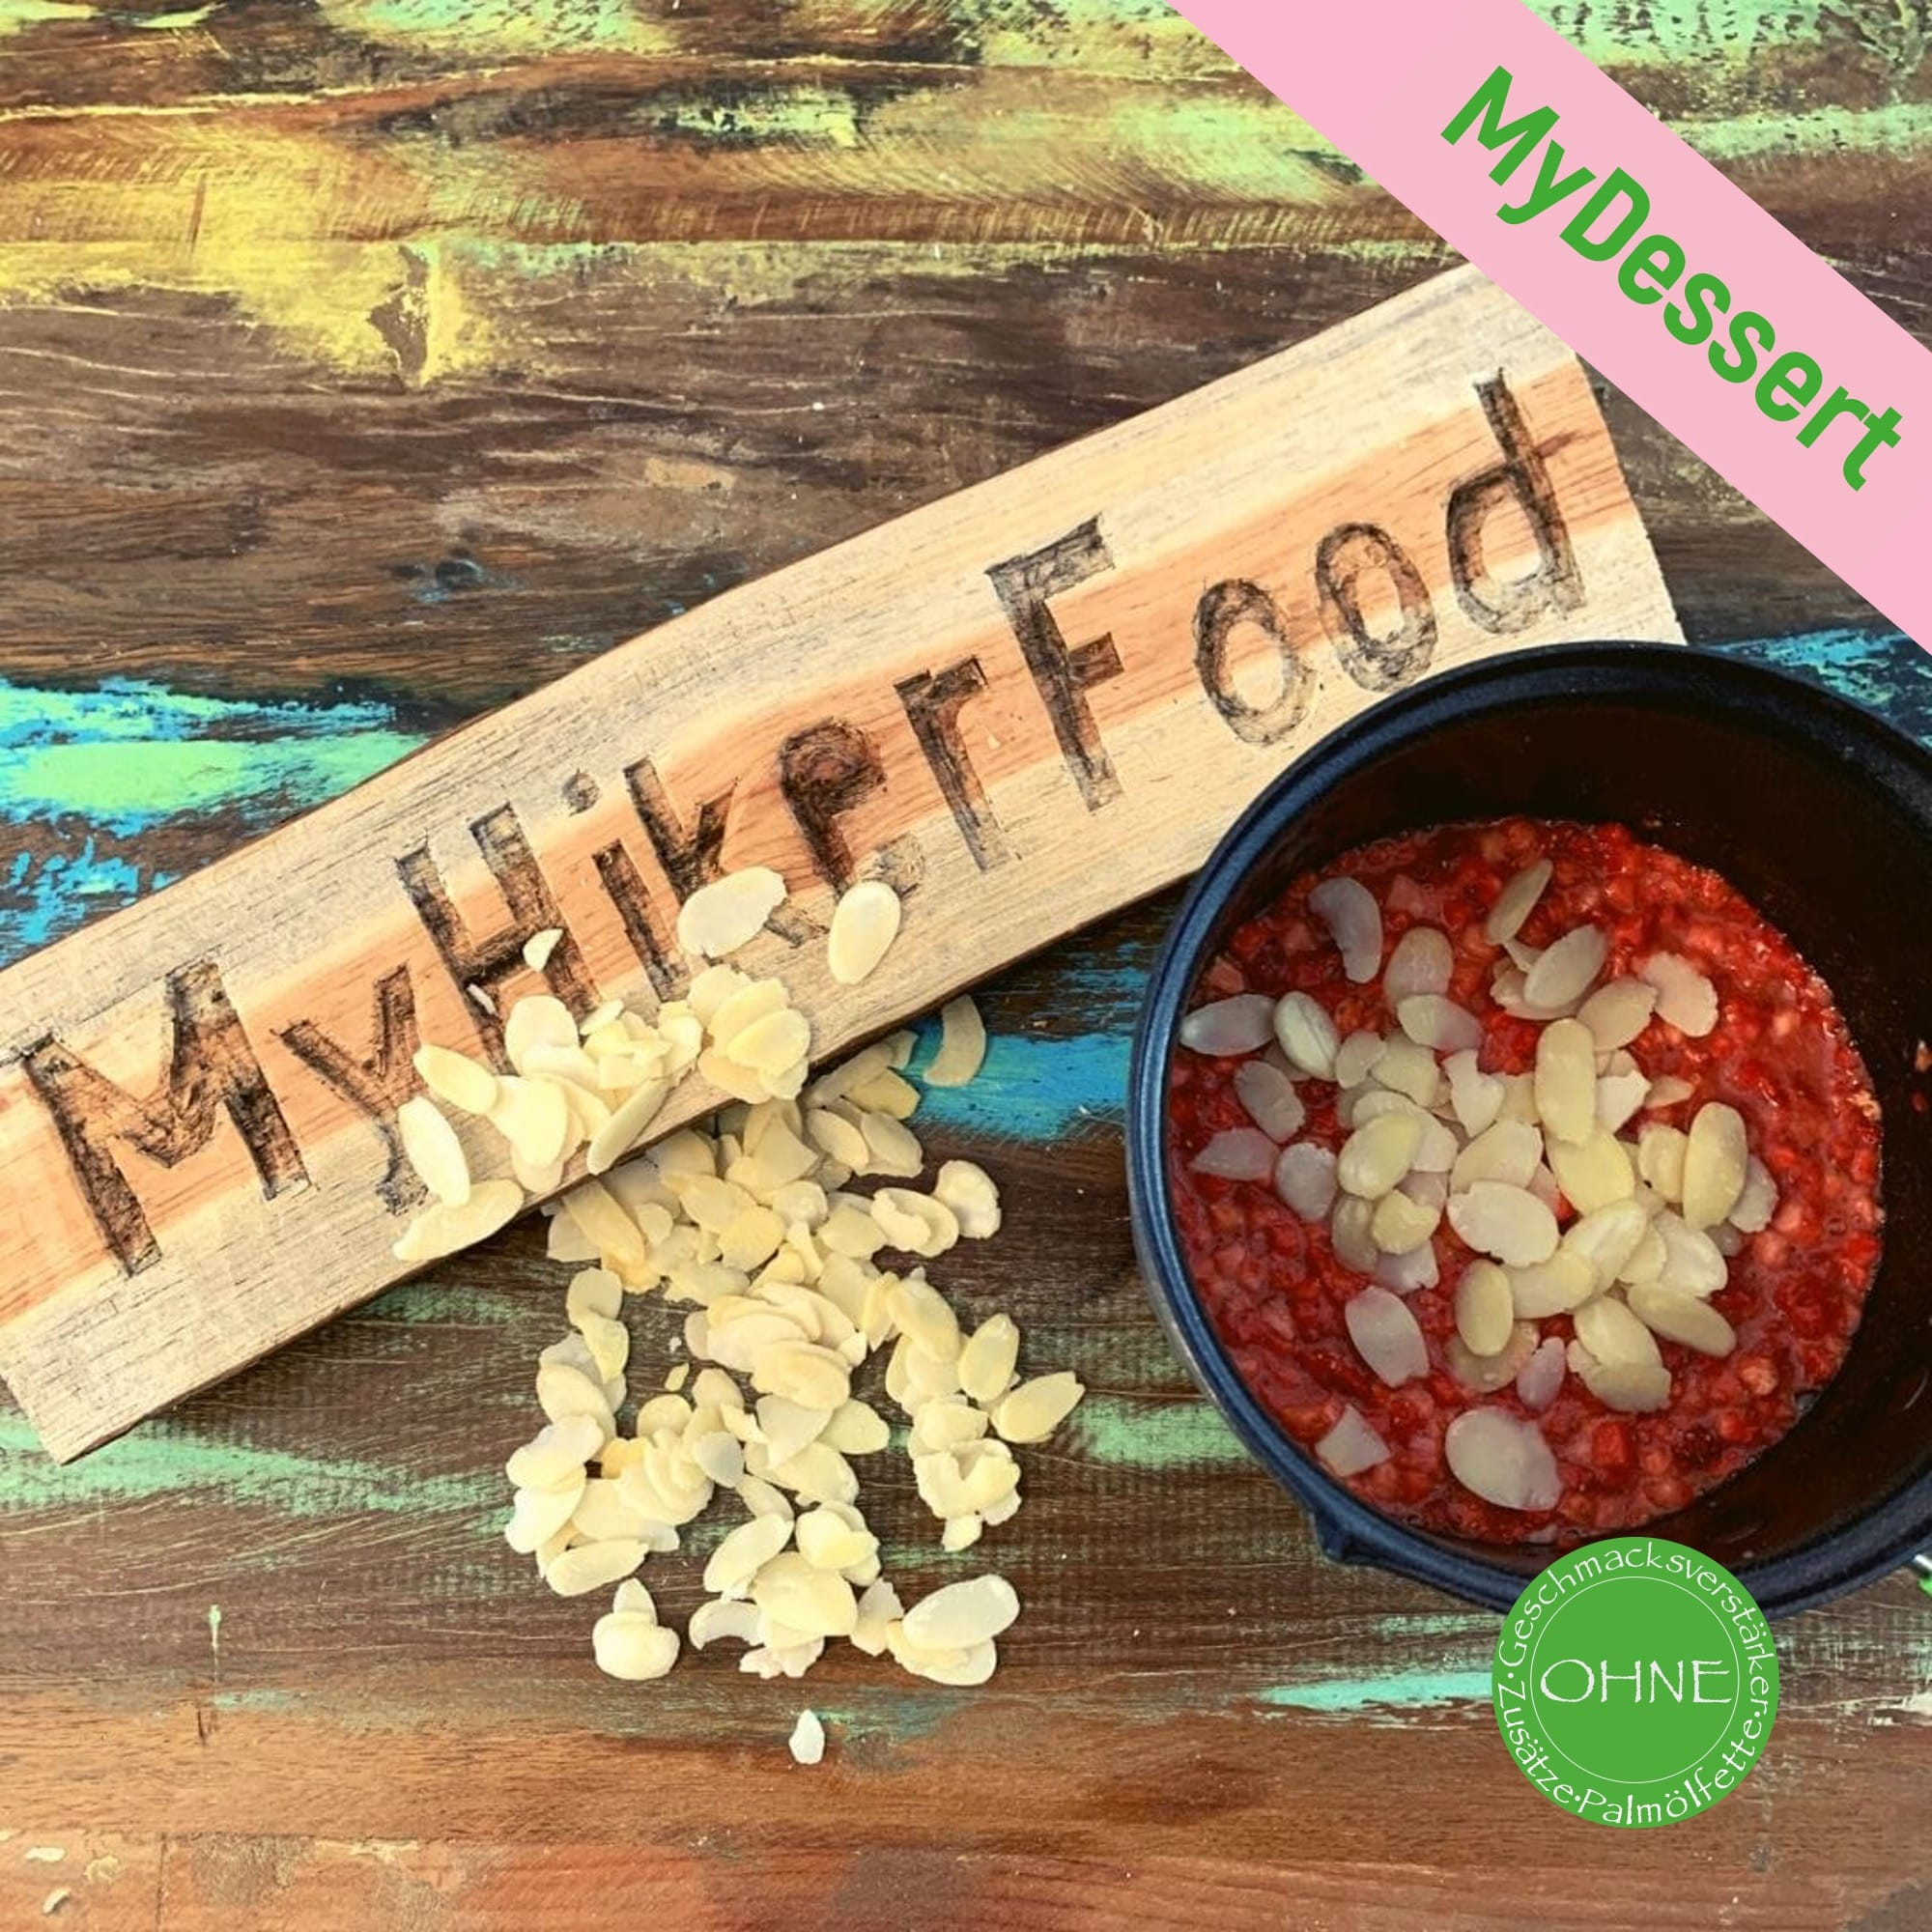 MyHikerfood – Strawberry and Almond Dream